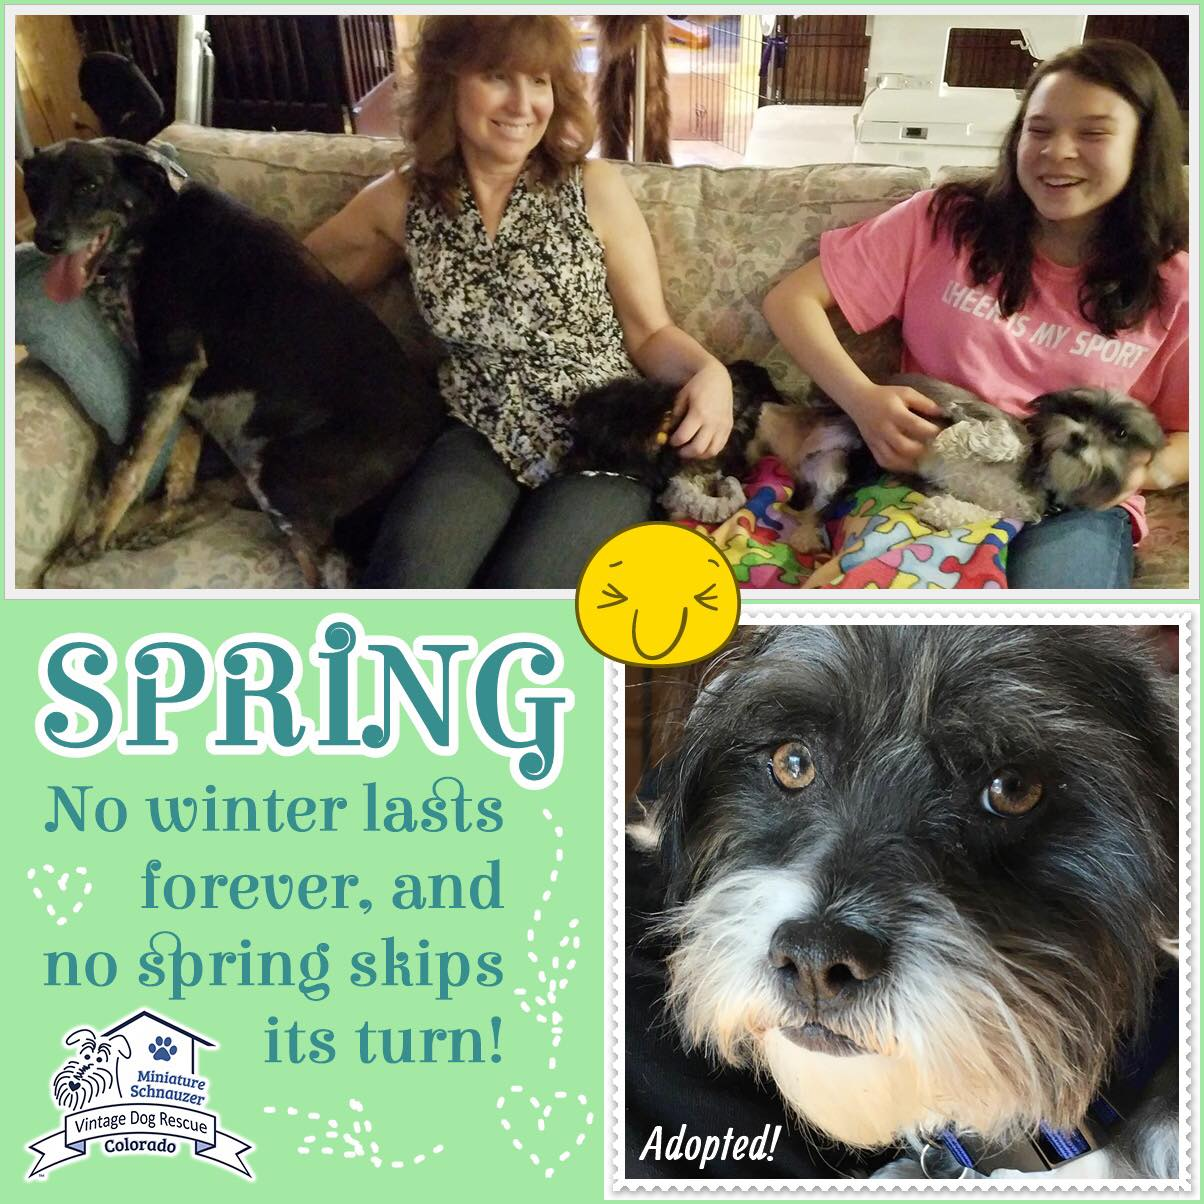 Spring was adopted!